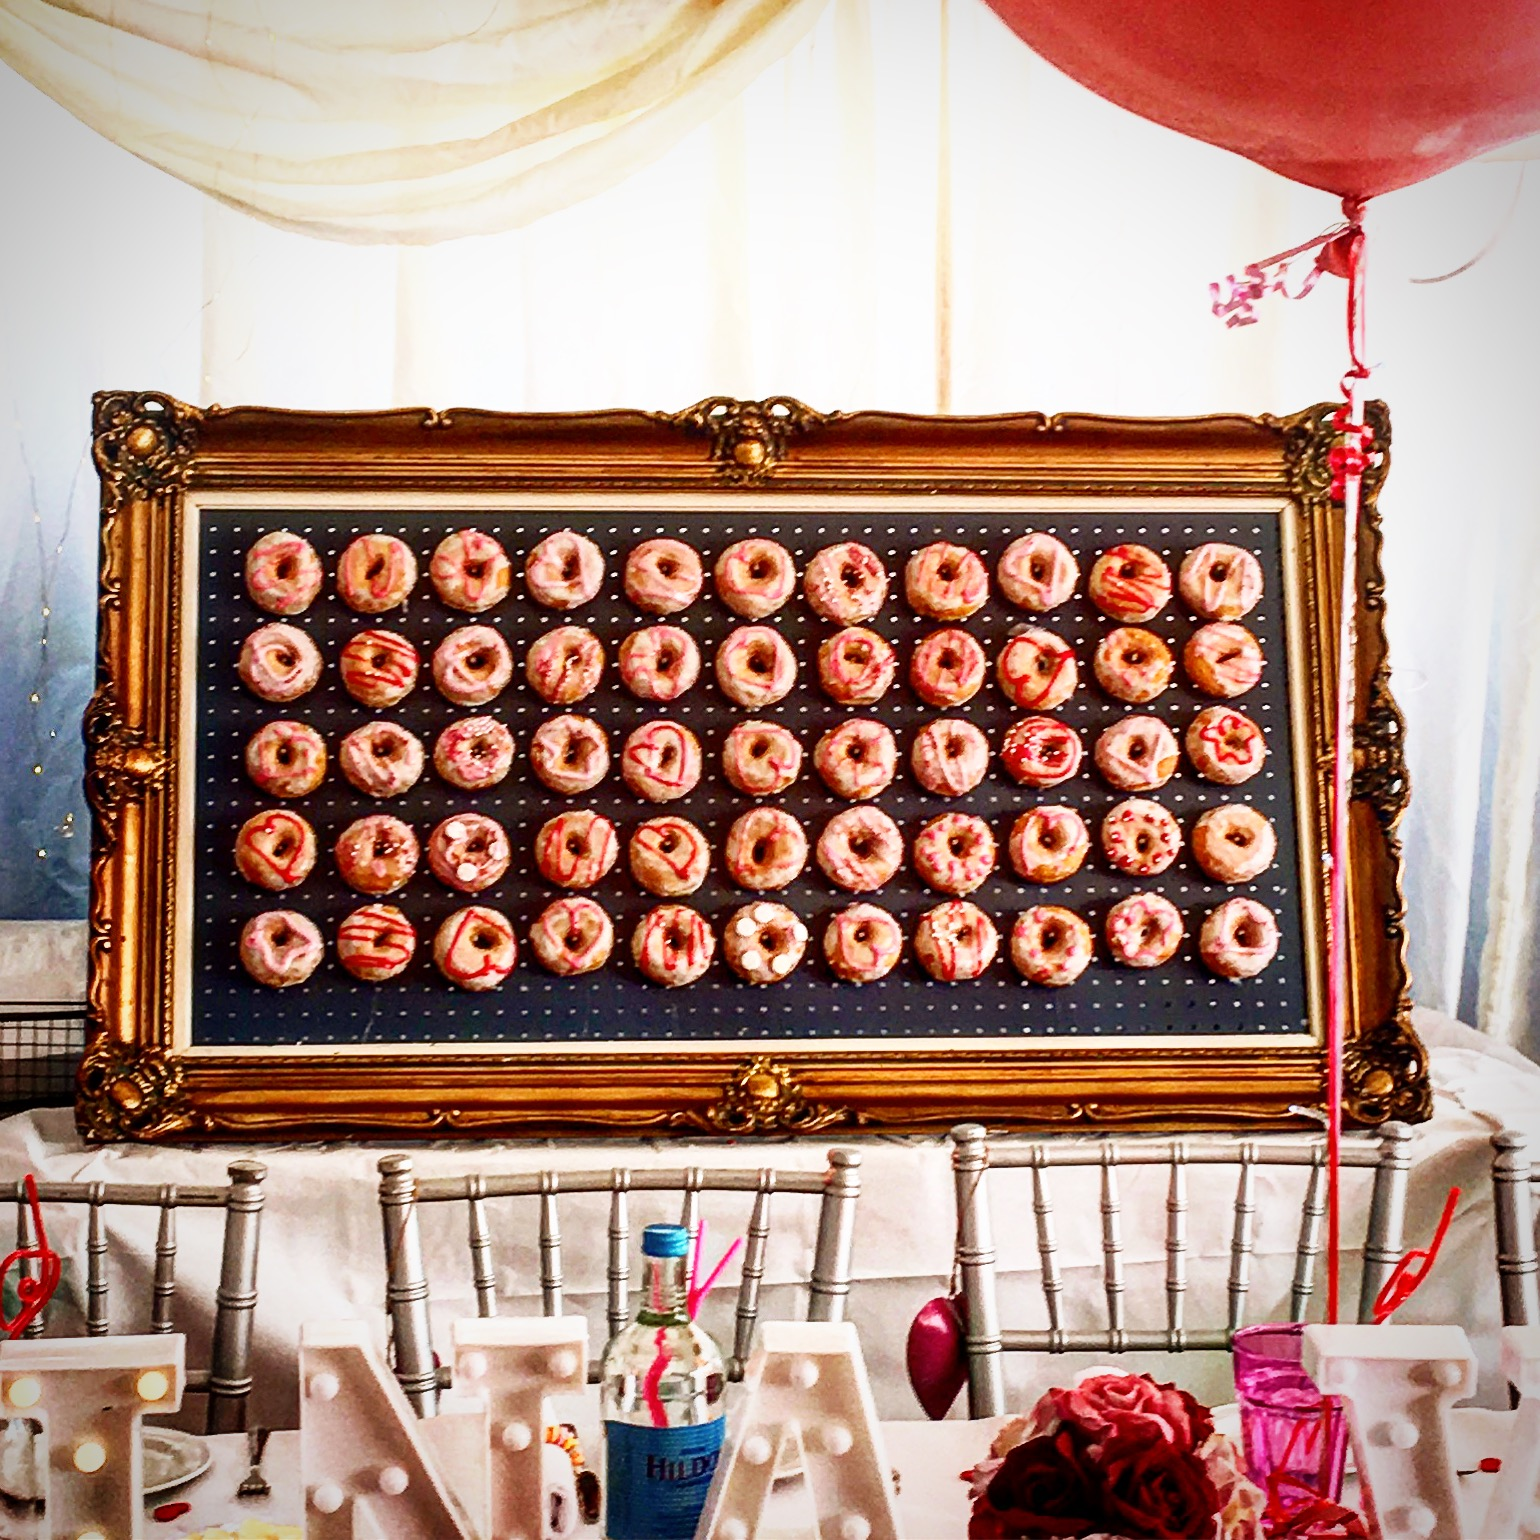 Bespoke doughnut walls for hire